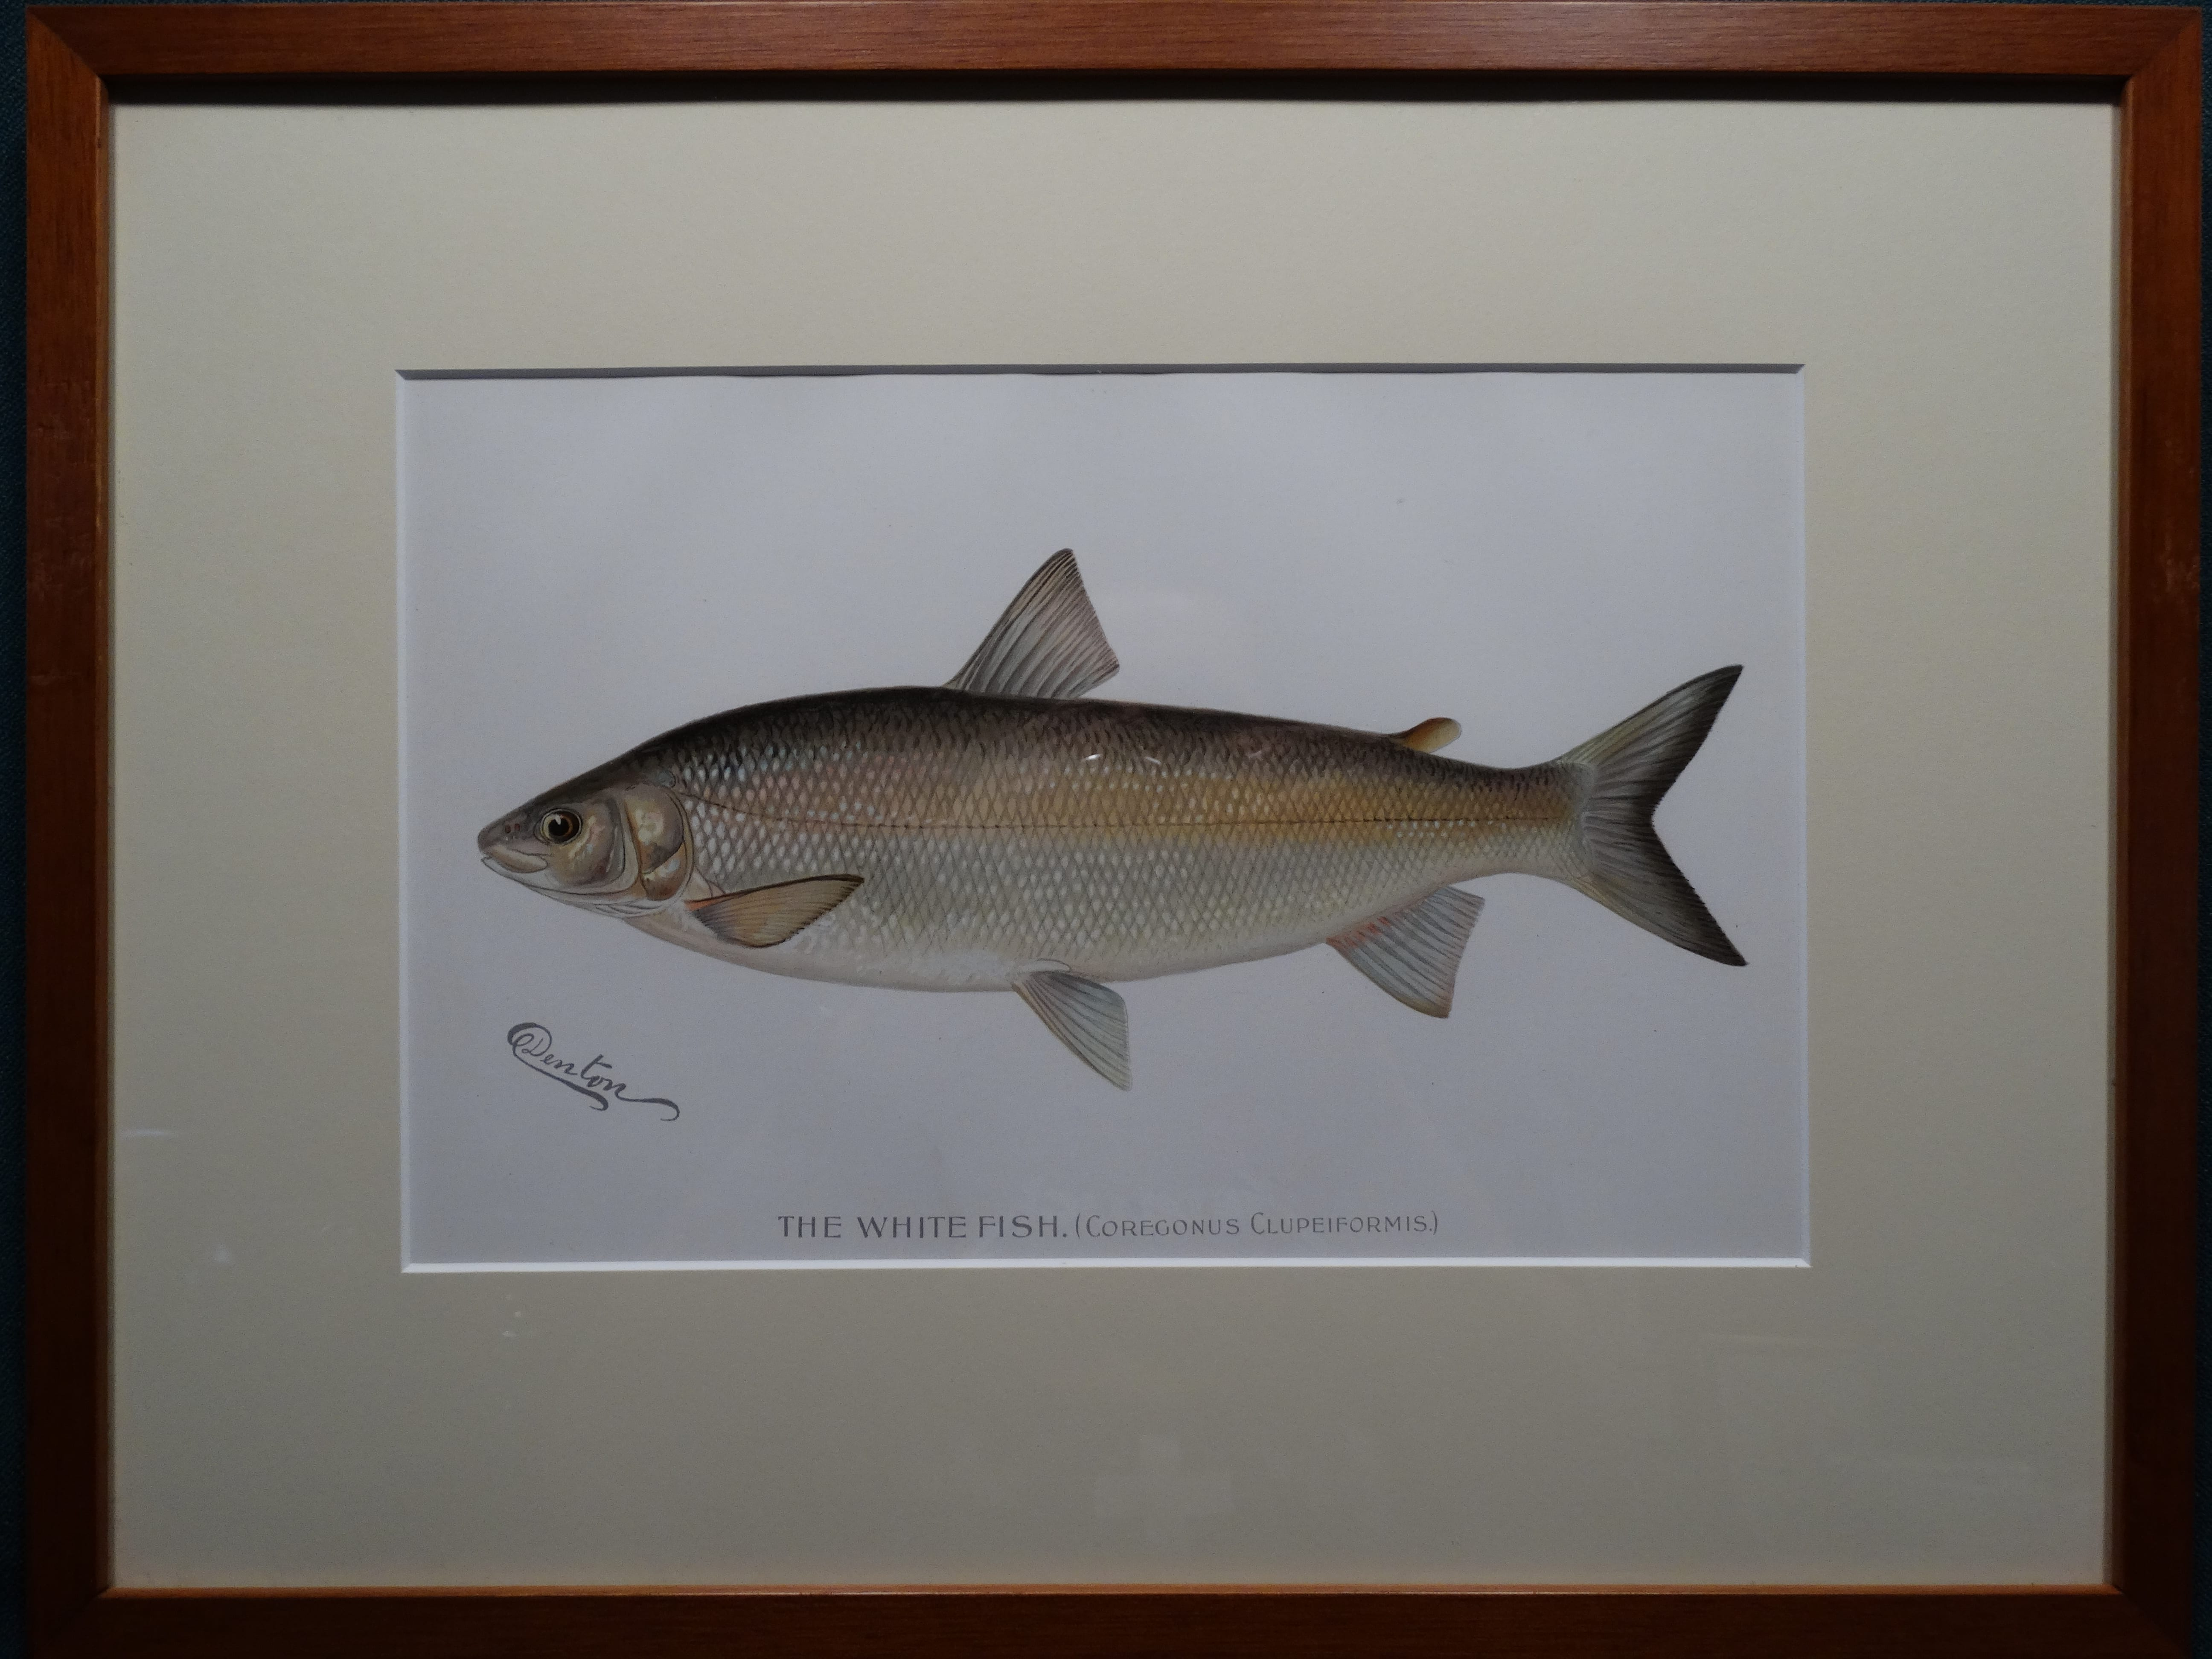 The White Fish by Denton Framed $115. with free US shipping